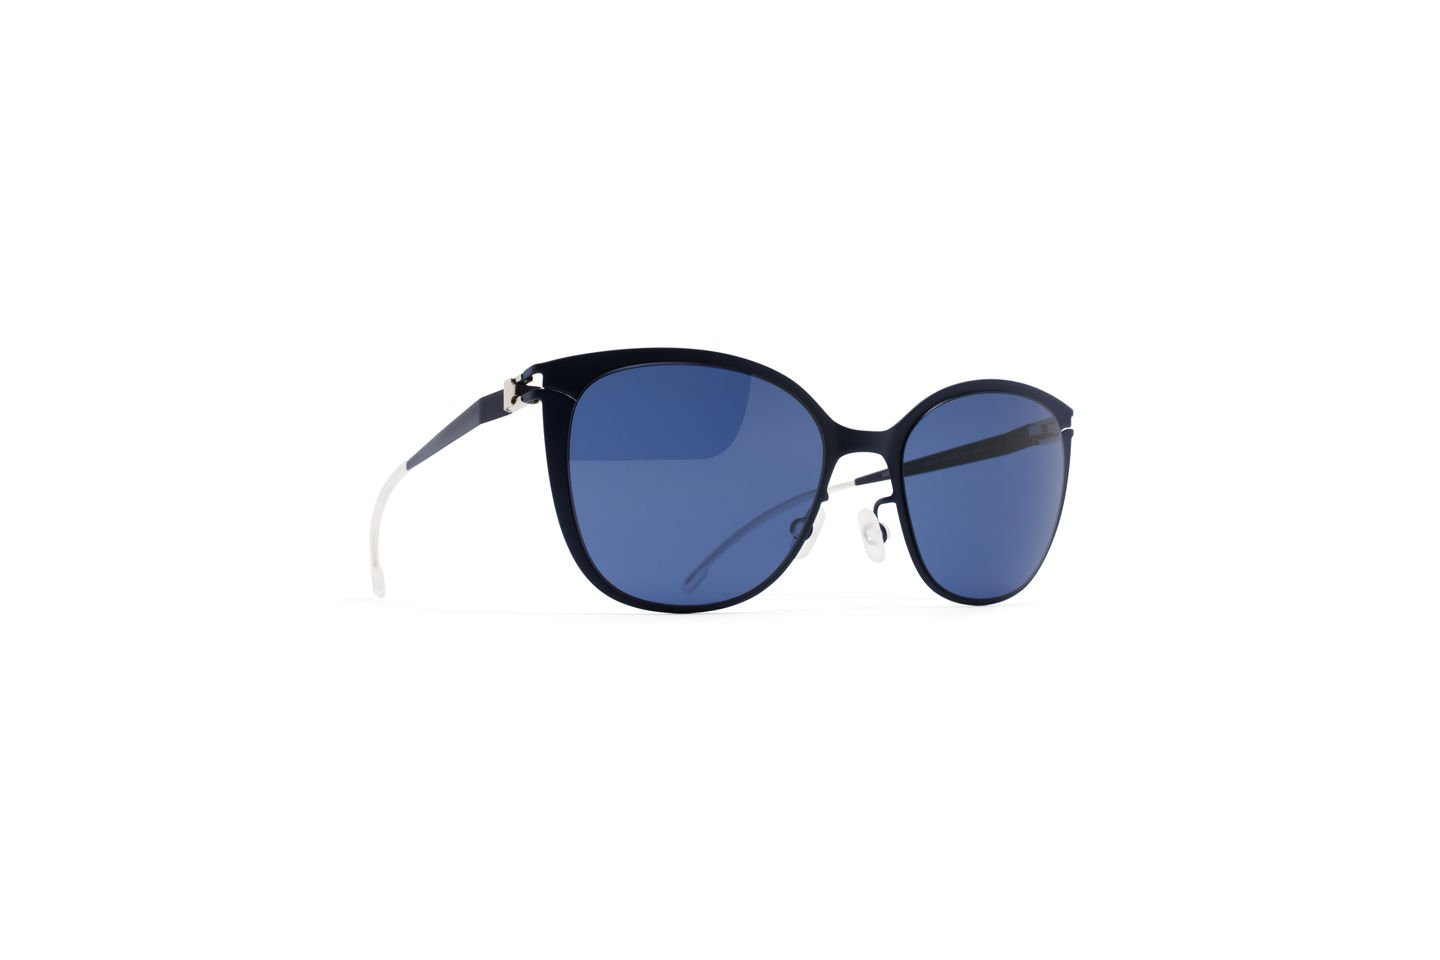 Sunglasses Mykita KEA R4-Nightblue First Sun Collection Kid Blue Square